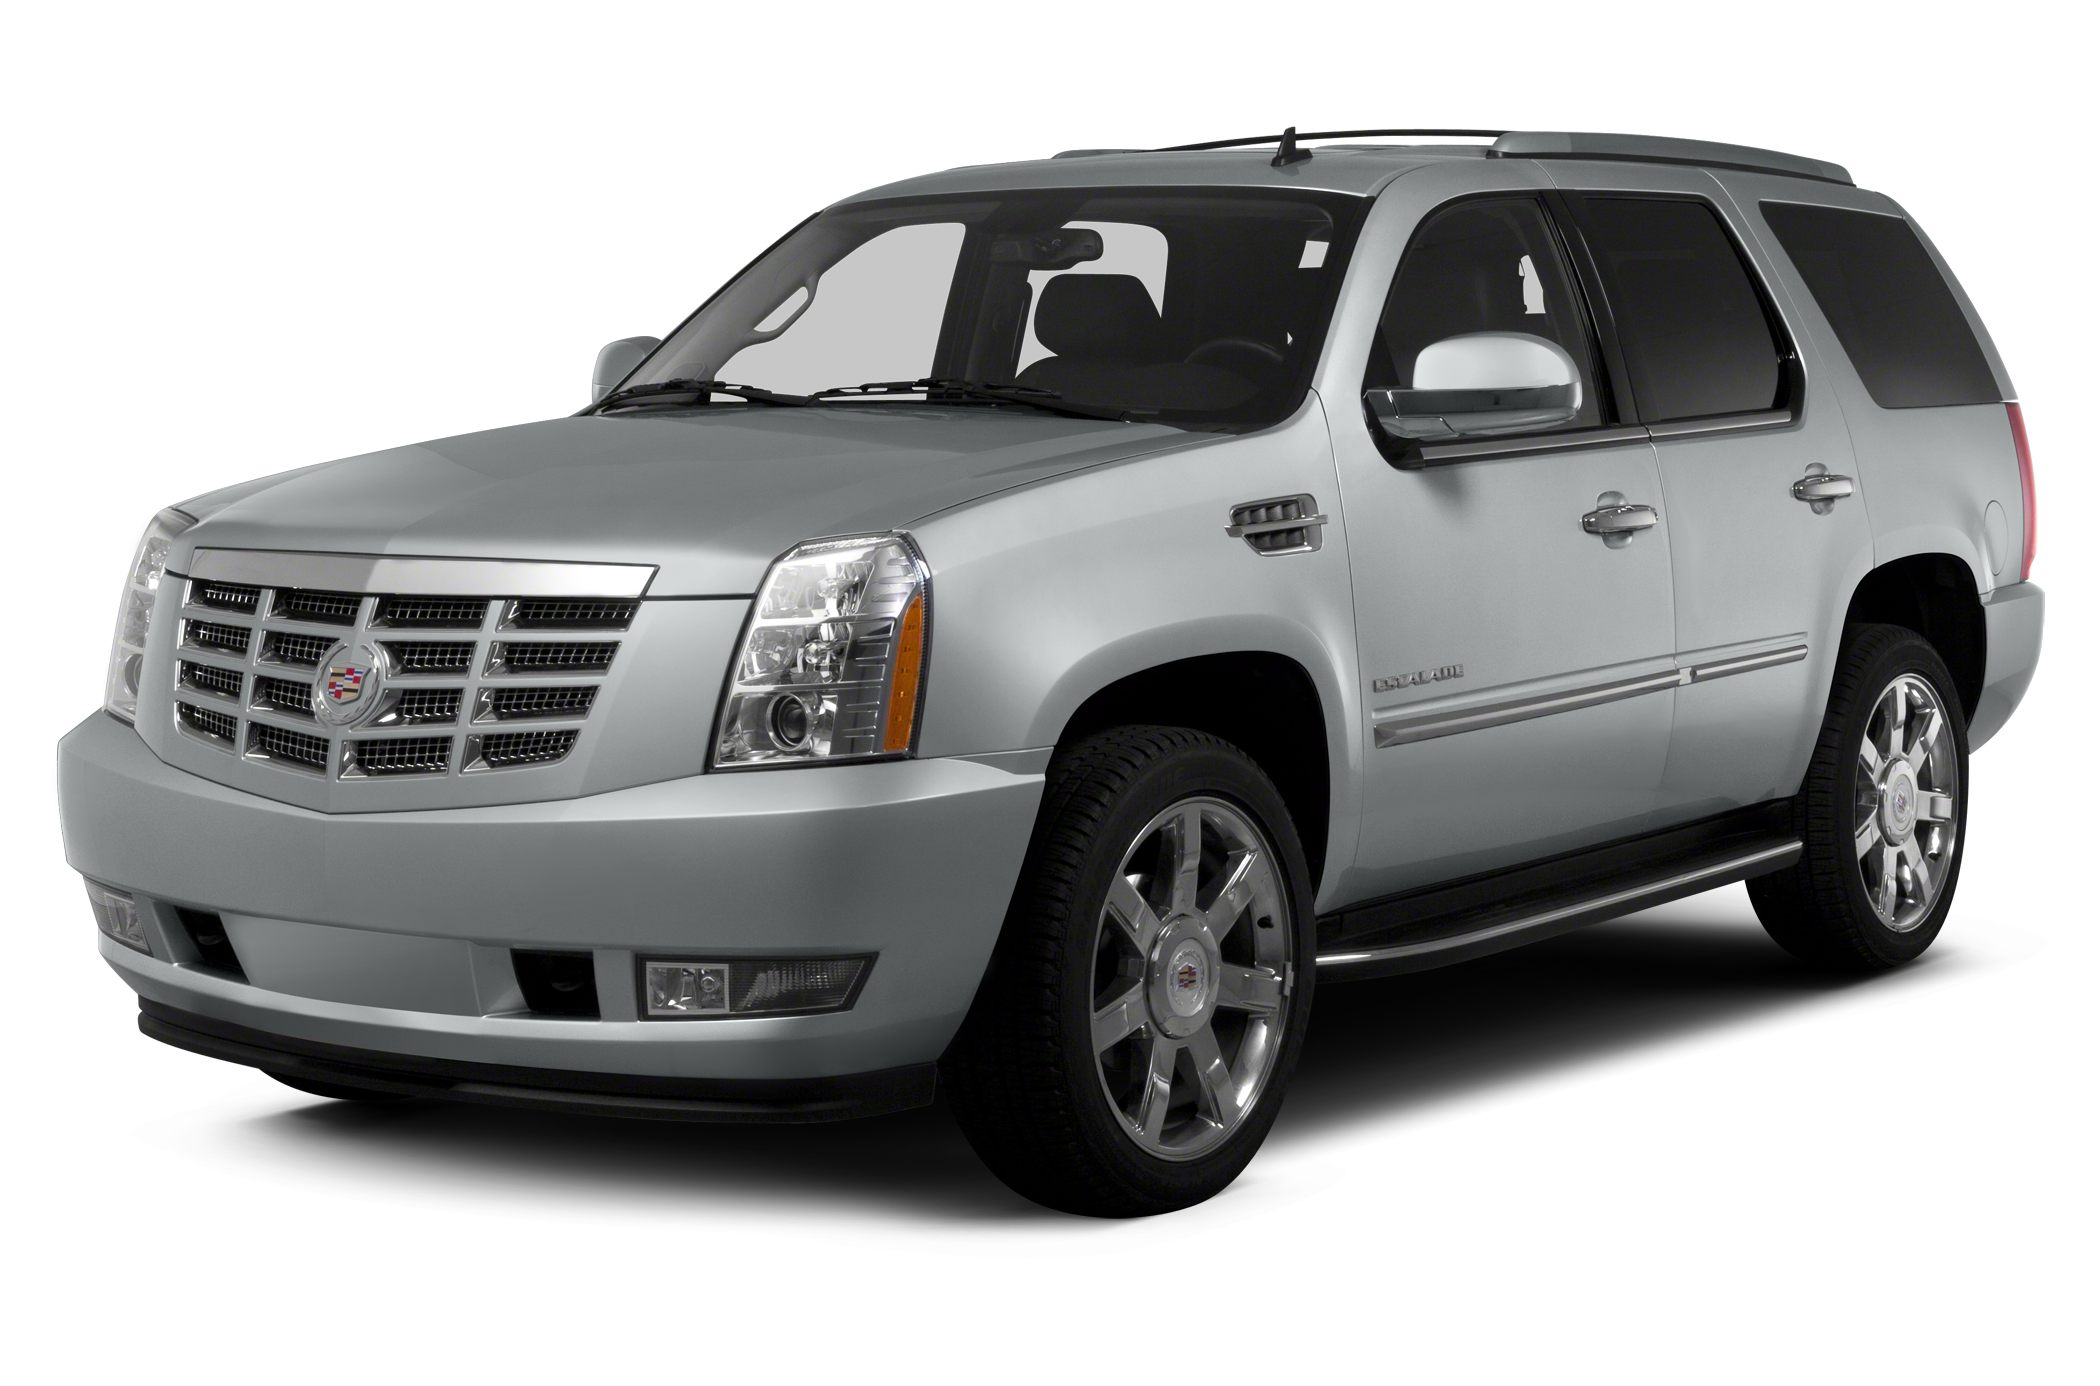 2013 Cadillac Escalade Luxury Win a score on this 2013 Cadillac Escalade Luxury while we have it